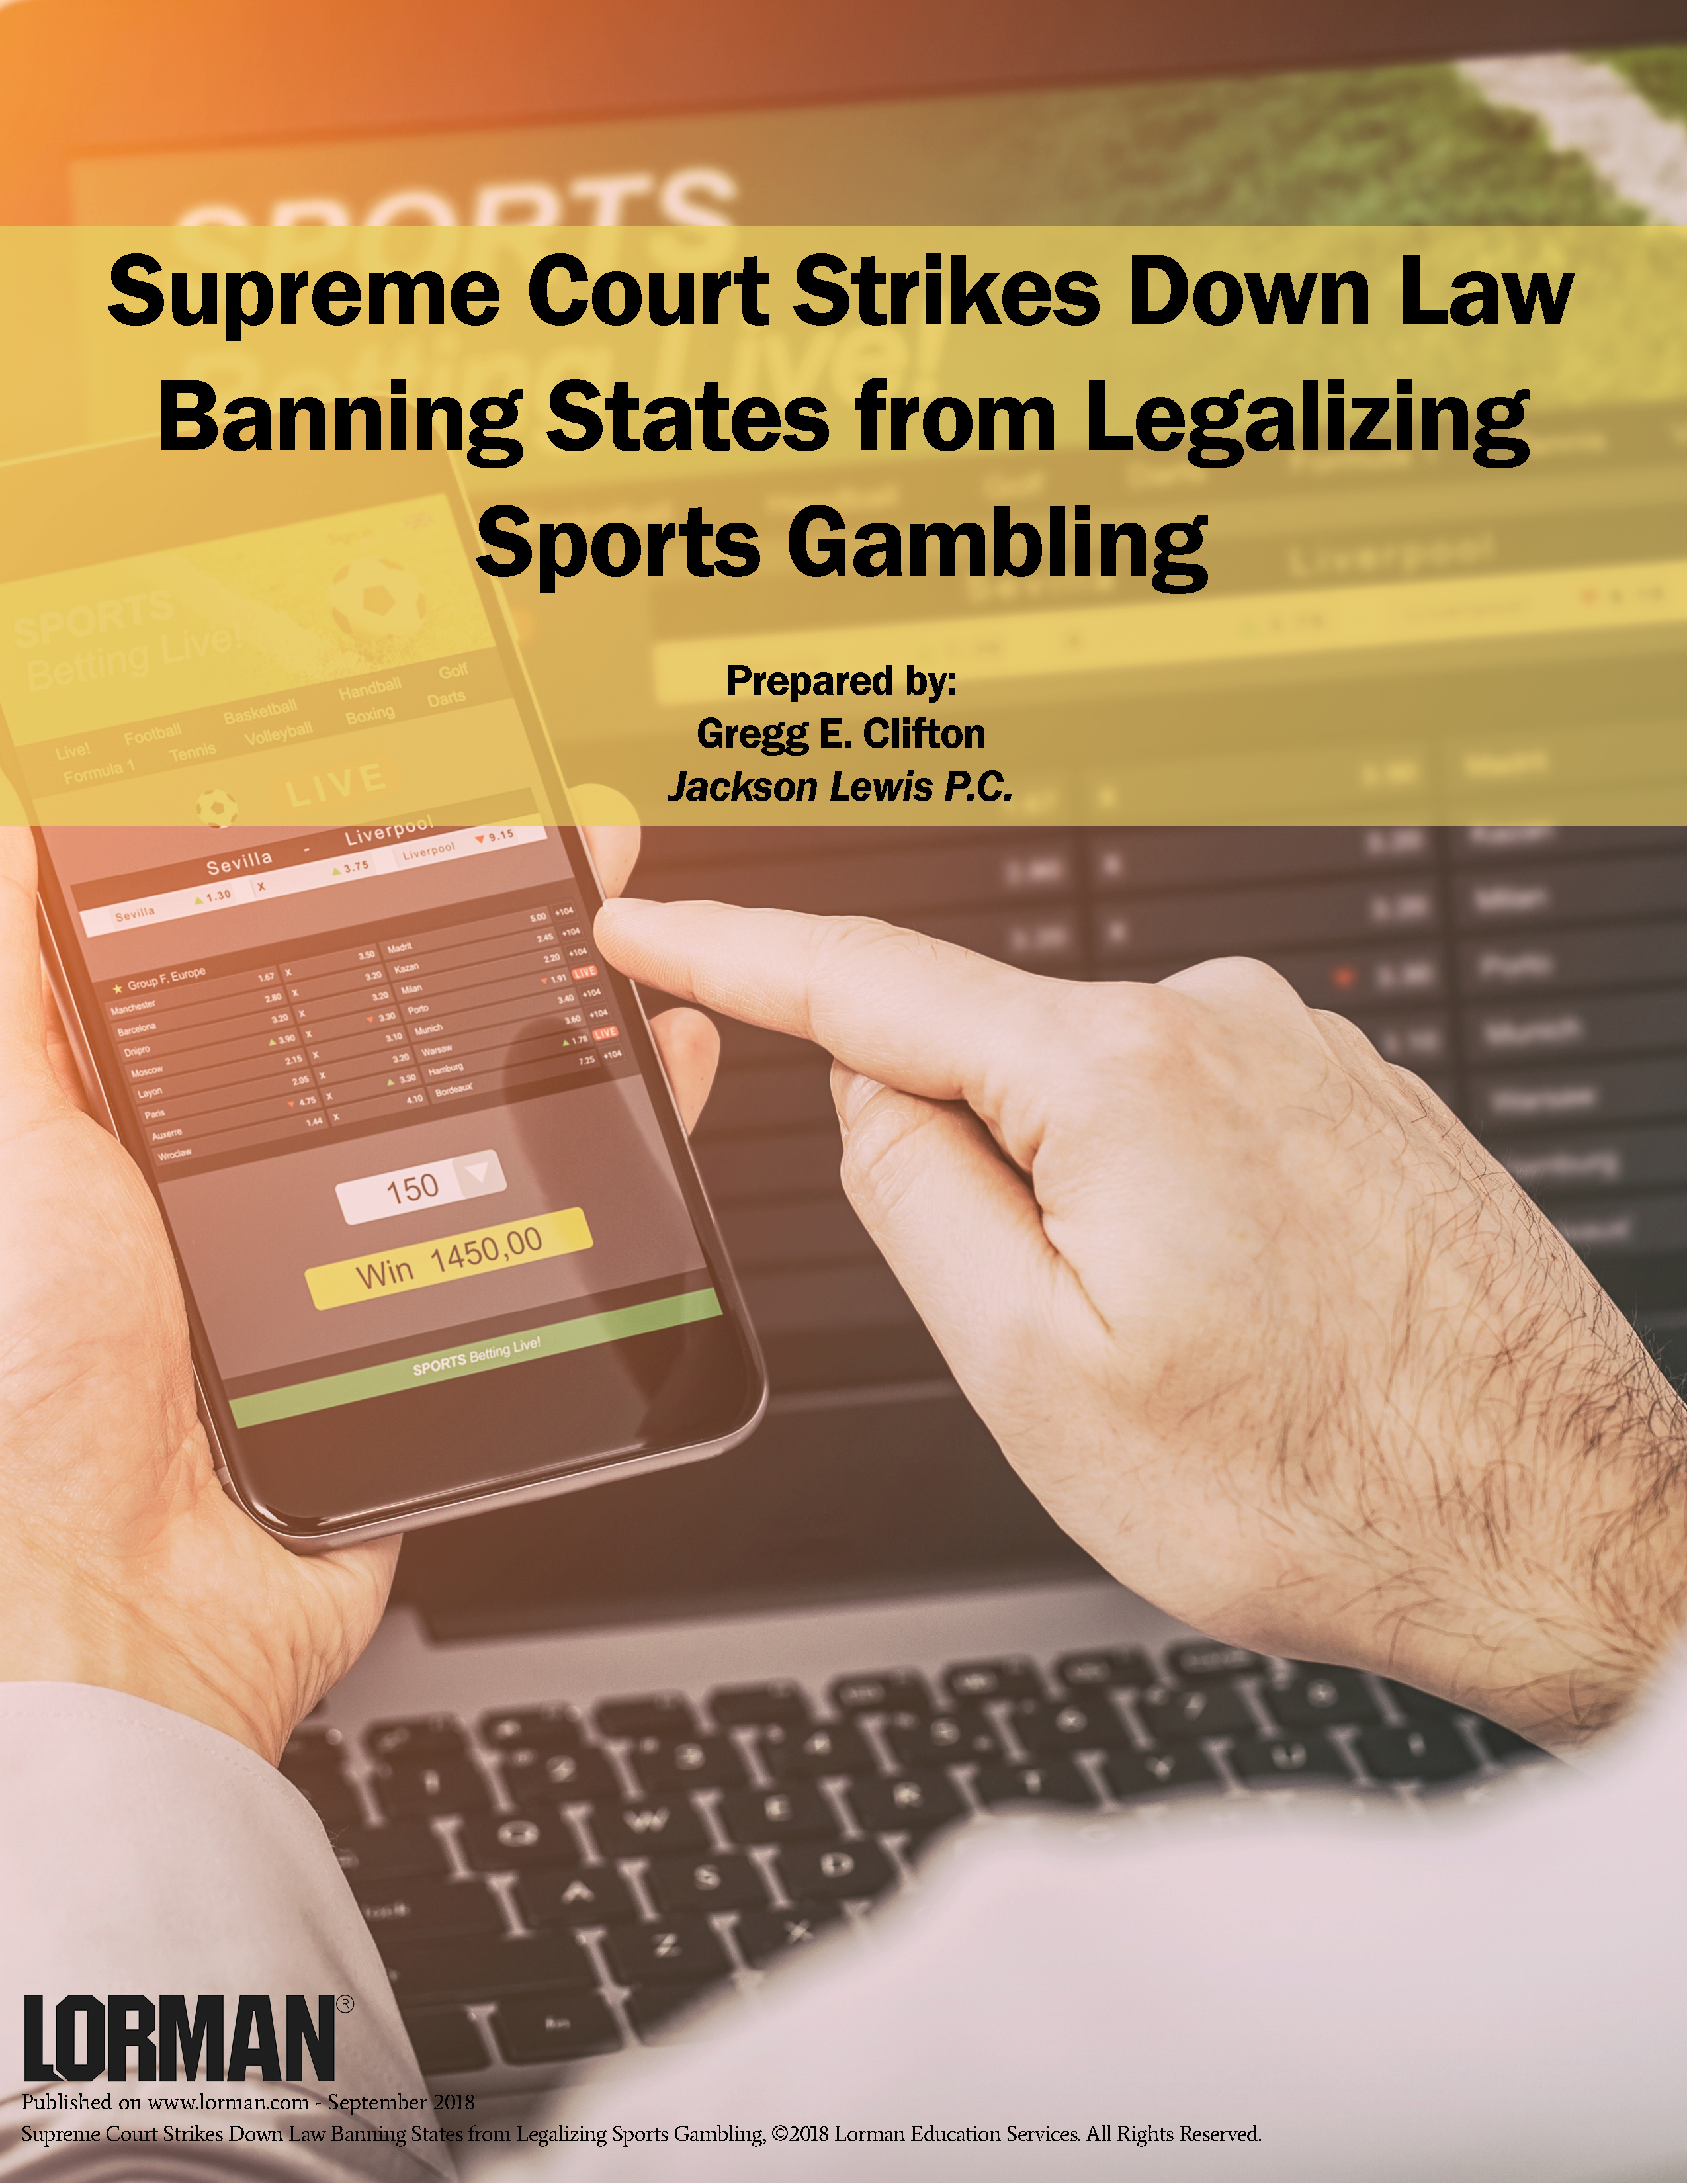 Supreme Court Strikes Down Law Banning States from Legalizing Sports Gambling